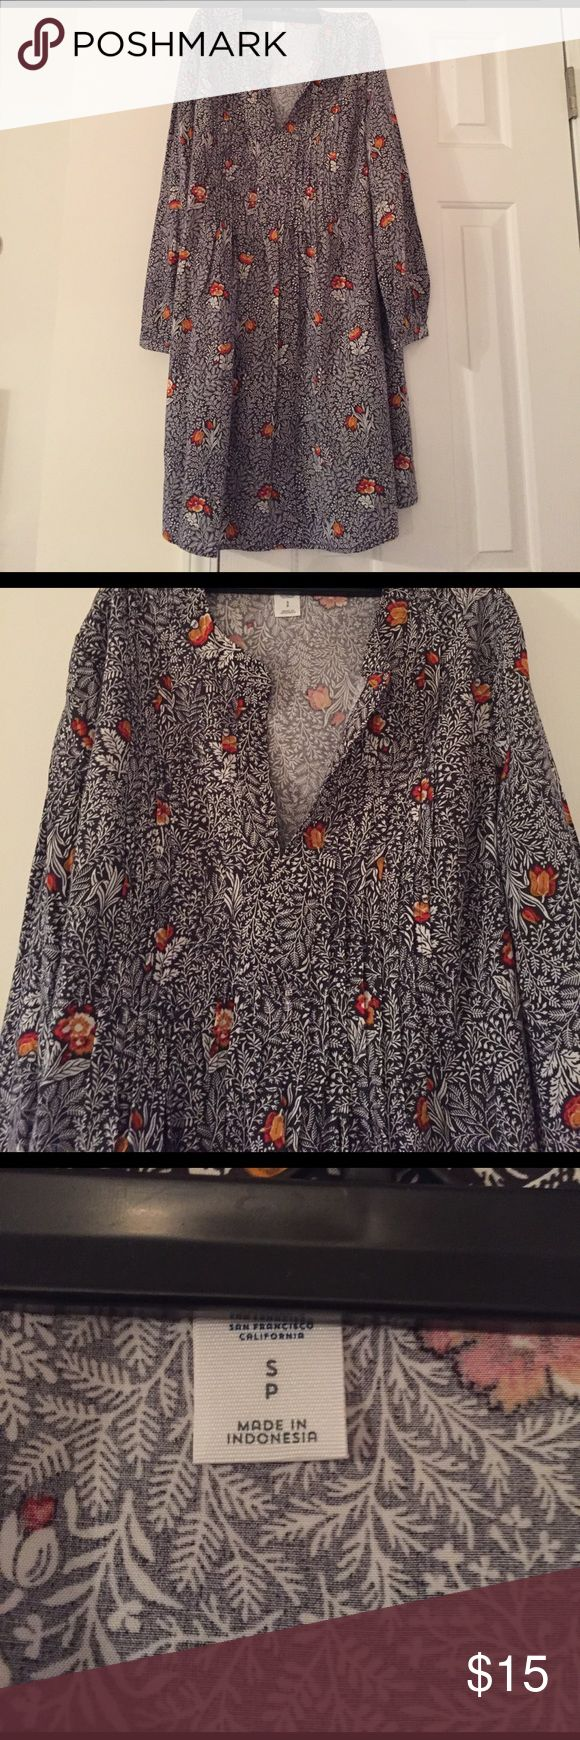 3/4 Length Sleeve Flowy Dress With hints of grey and white colors, and flower features in orange and red; this flowy dress will be perfect with boots in the winter or your favorite sandals in the summer. Never Worn Old Navy Dresses Long Sleeve